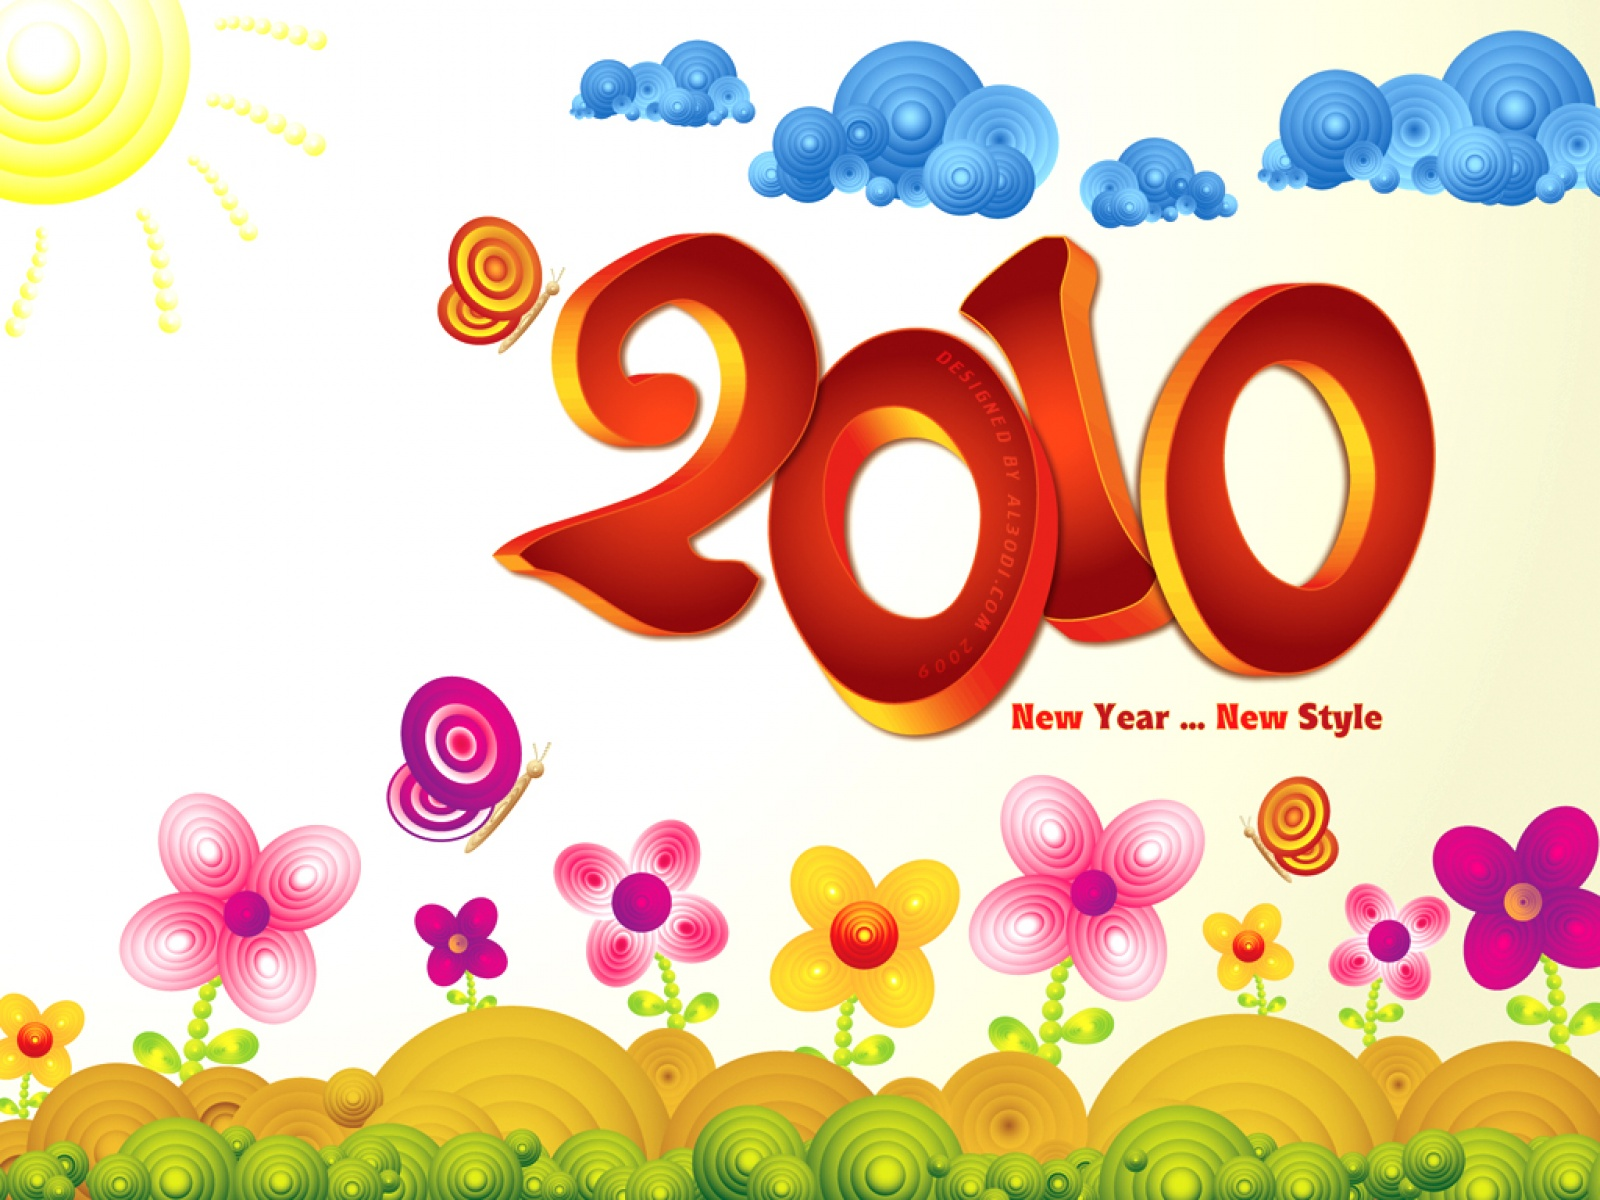 2010 New Year New Style 185.03 Kb